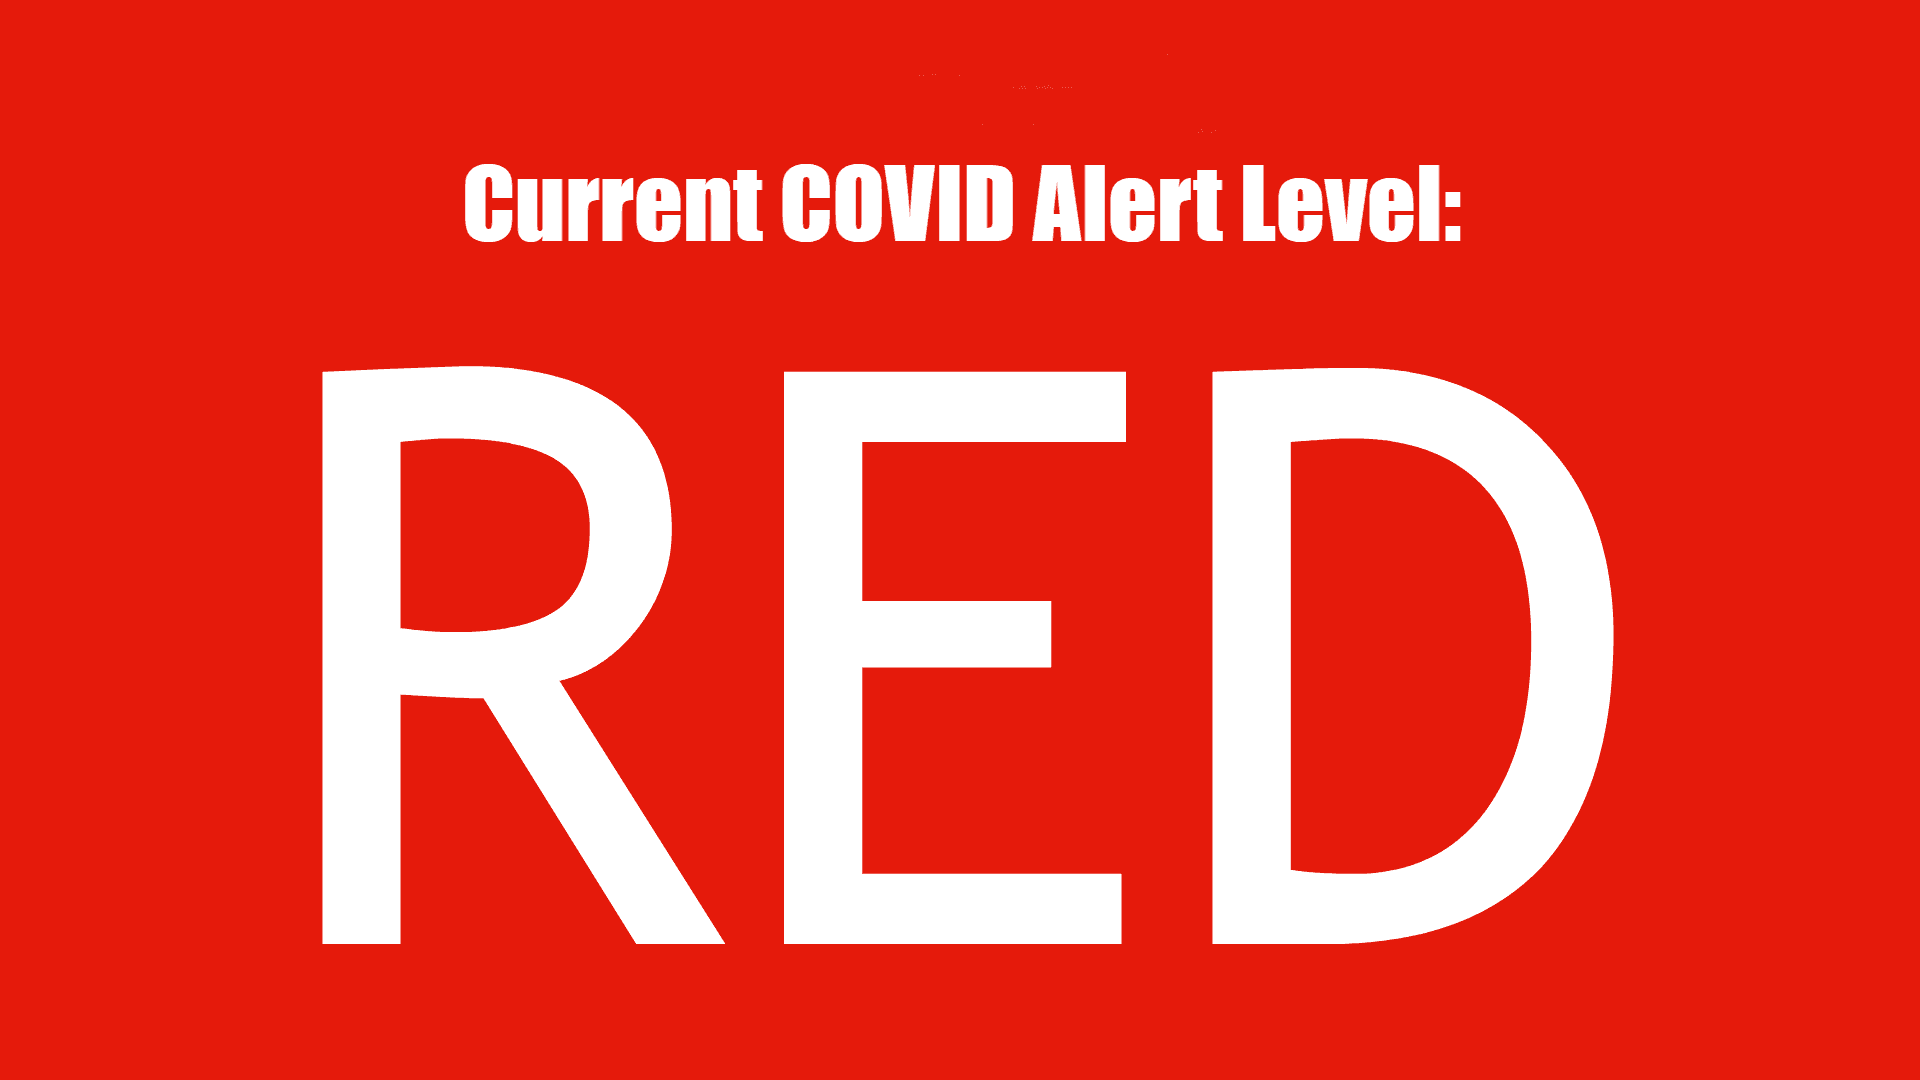 porter county lake county laporte county indiana code red covid19